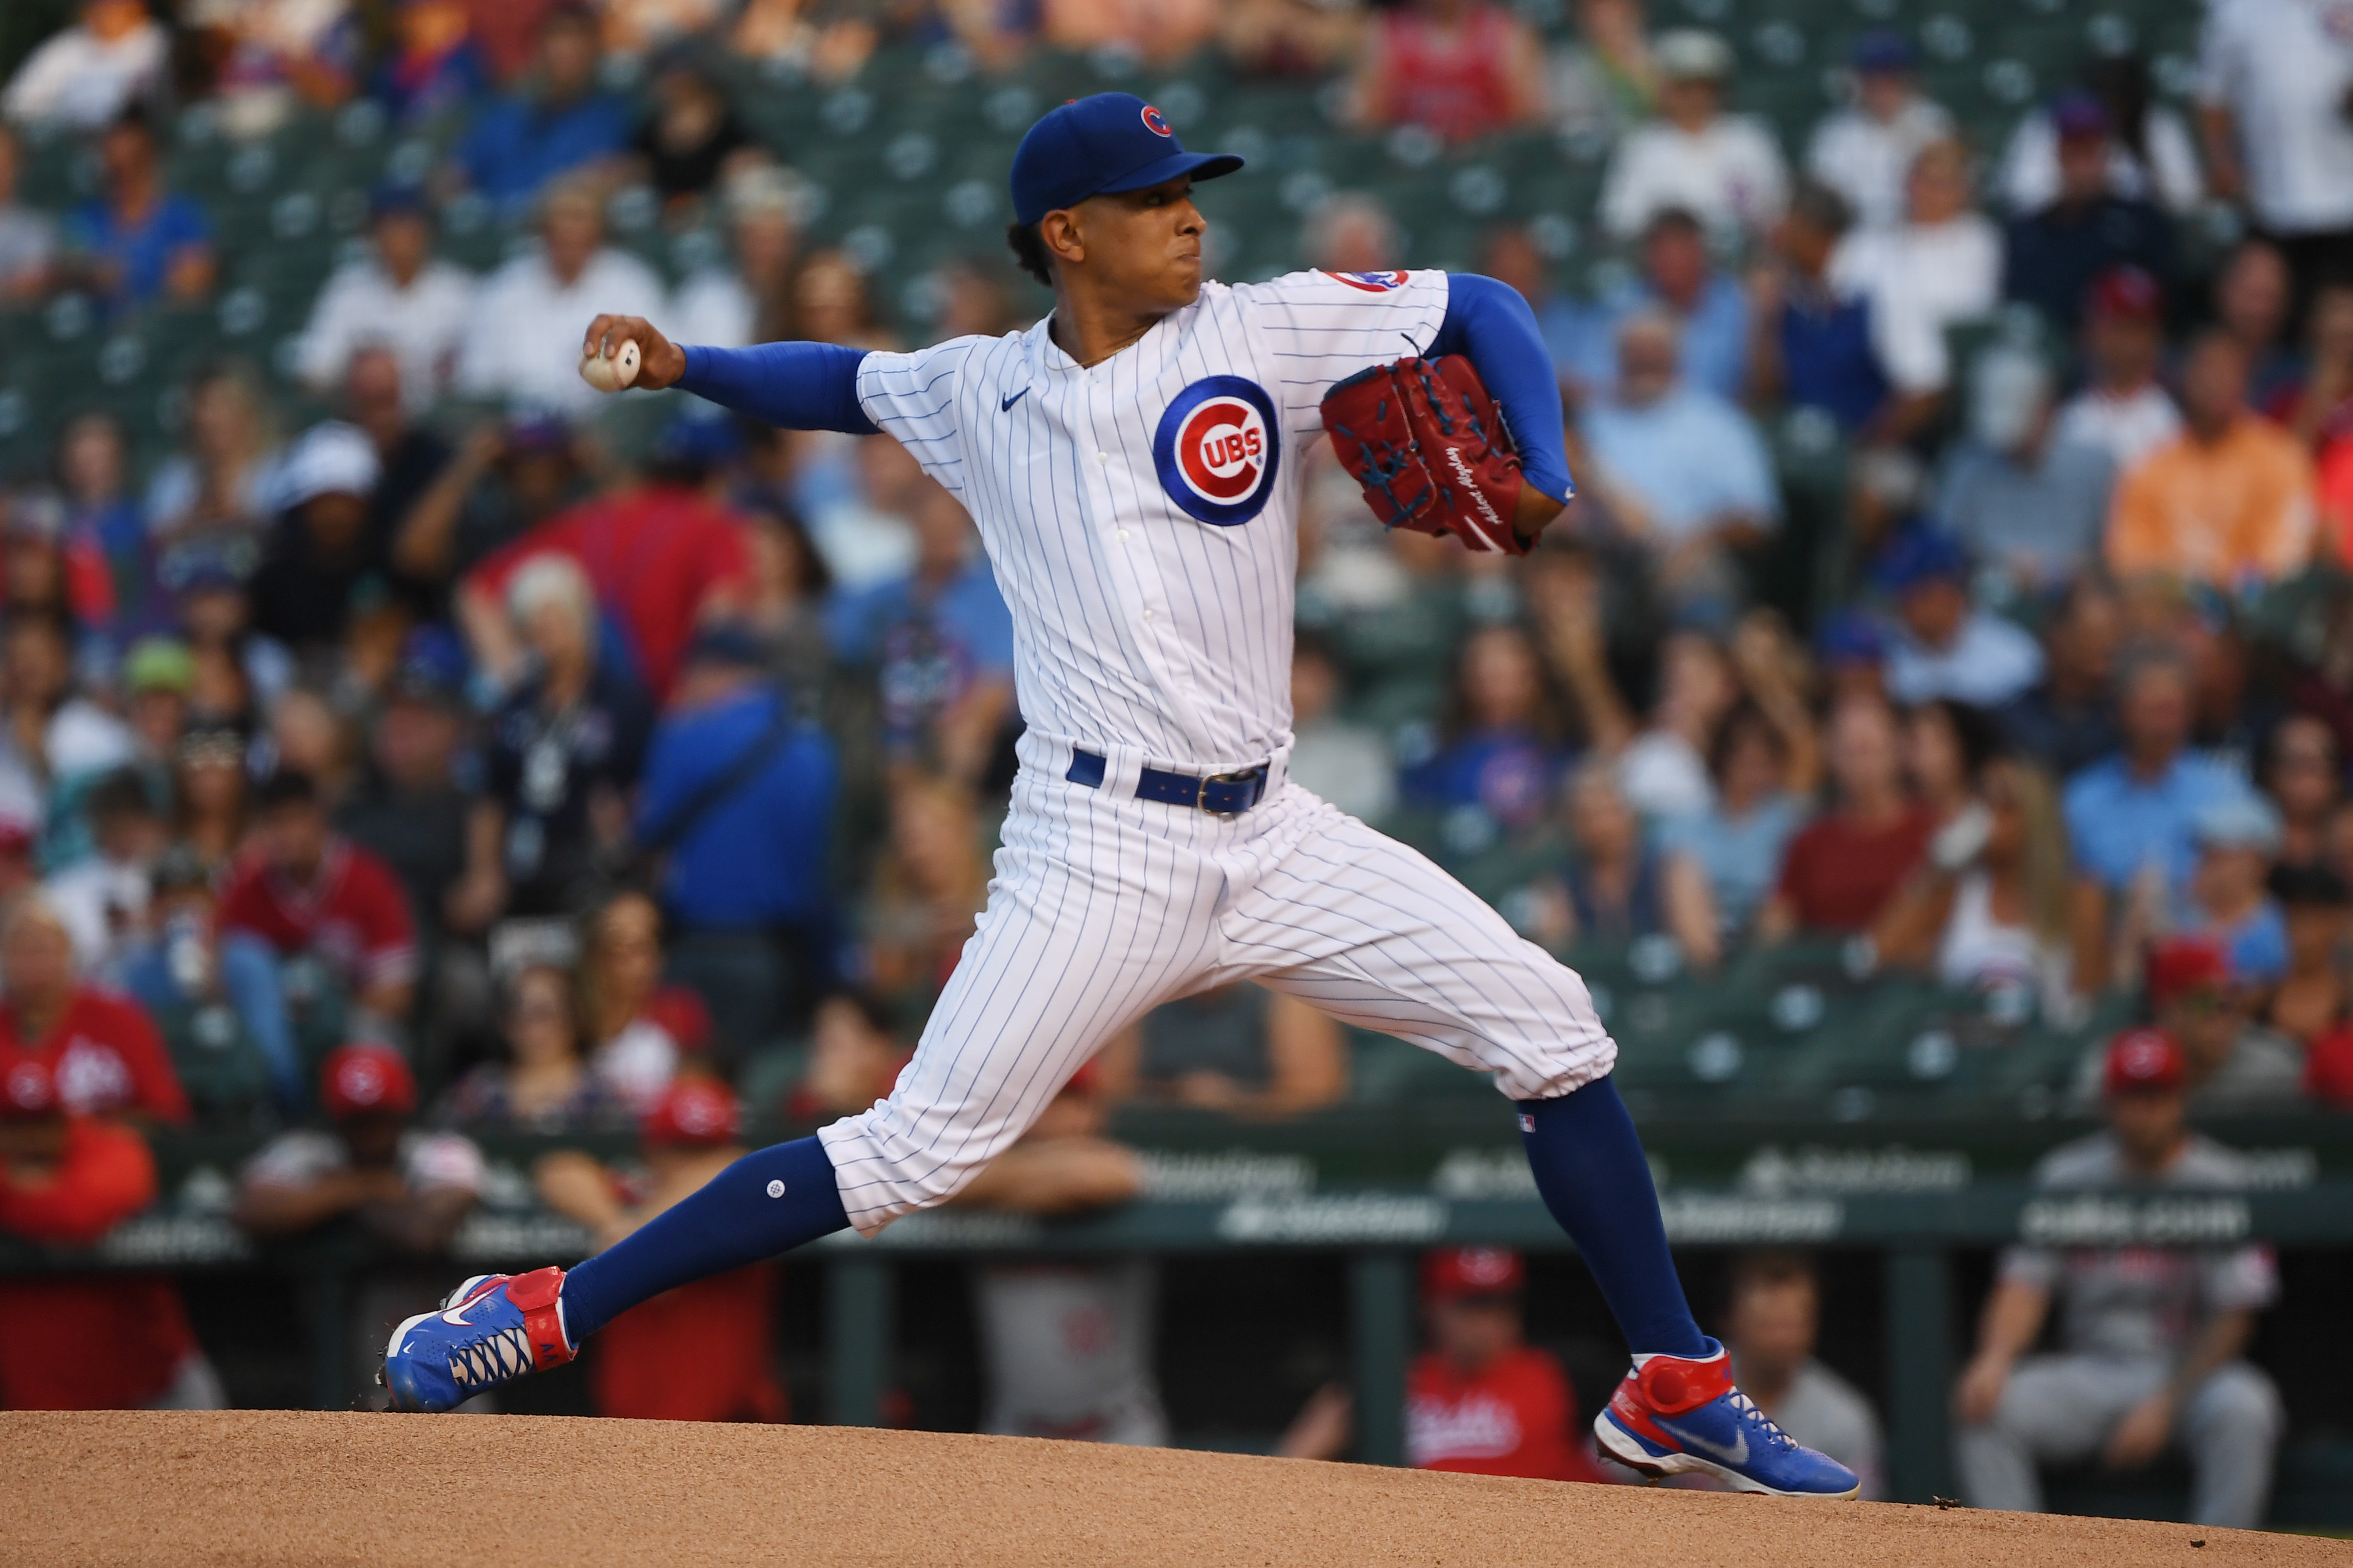 Cubs starter Adbert Alzolay  has shown he can handle the physical toll of a full season. His next step is figuring out left-handed hitters like the ones the Reds stacked against him.